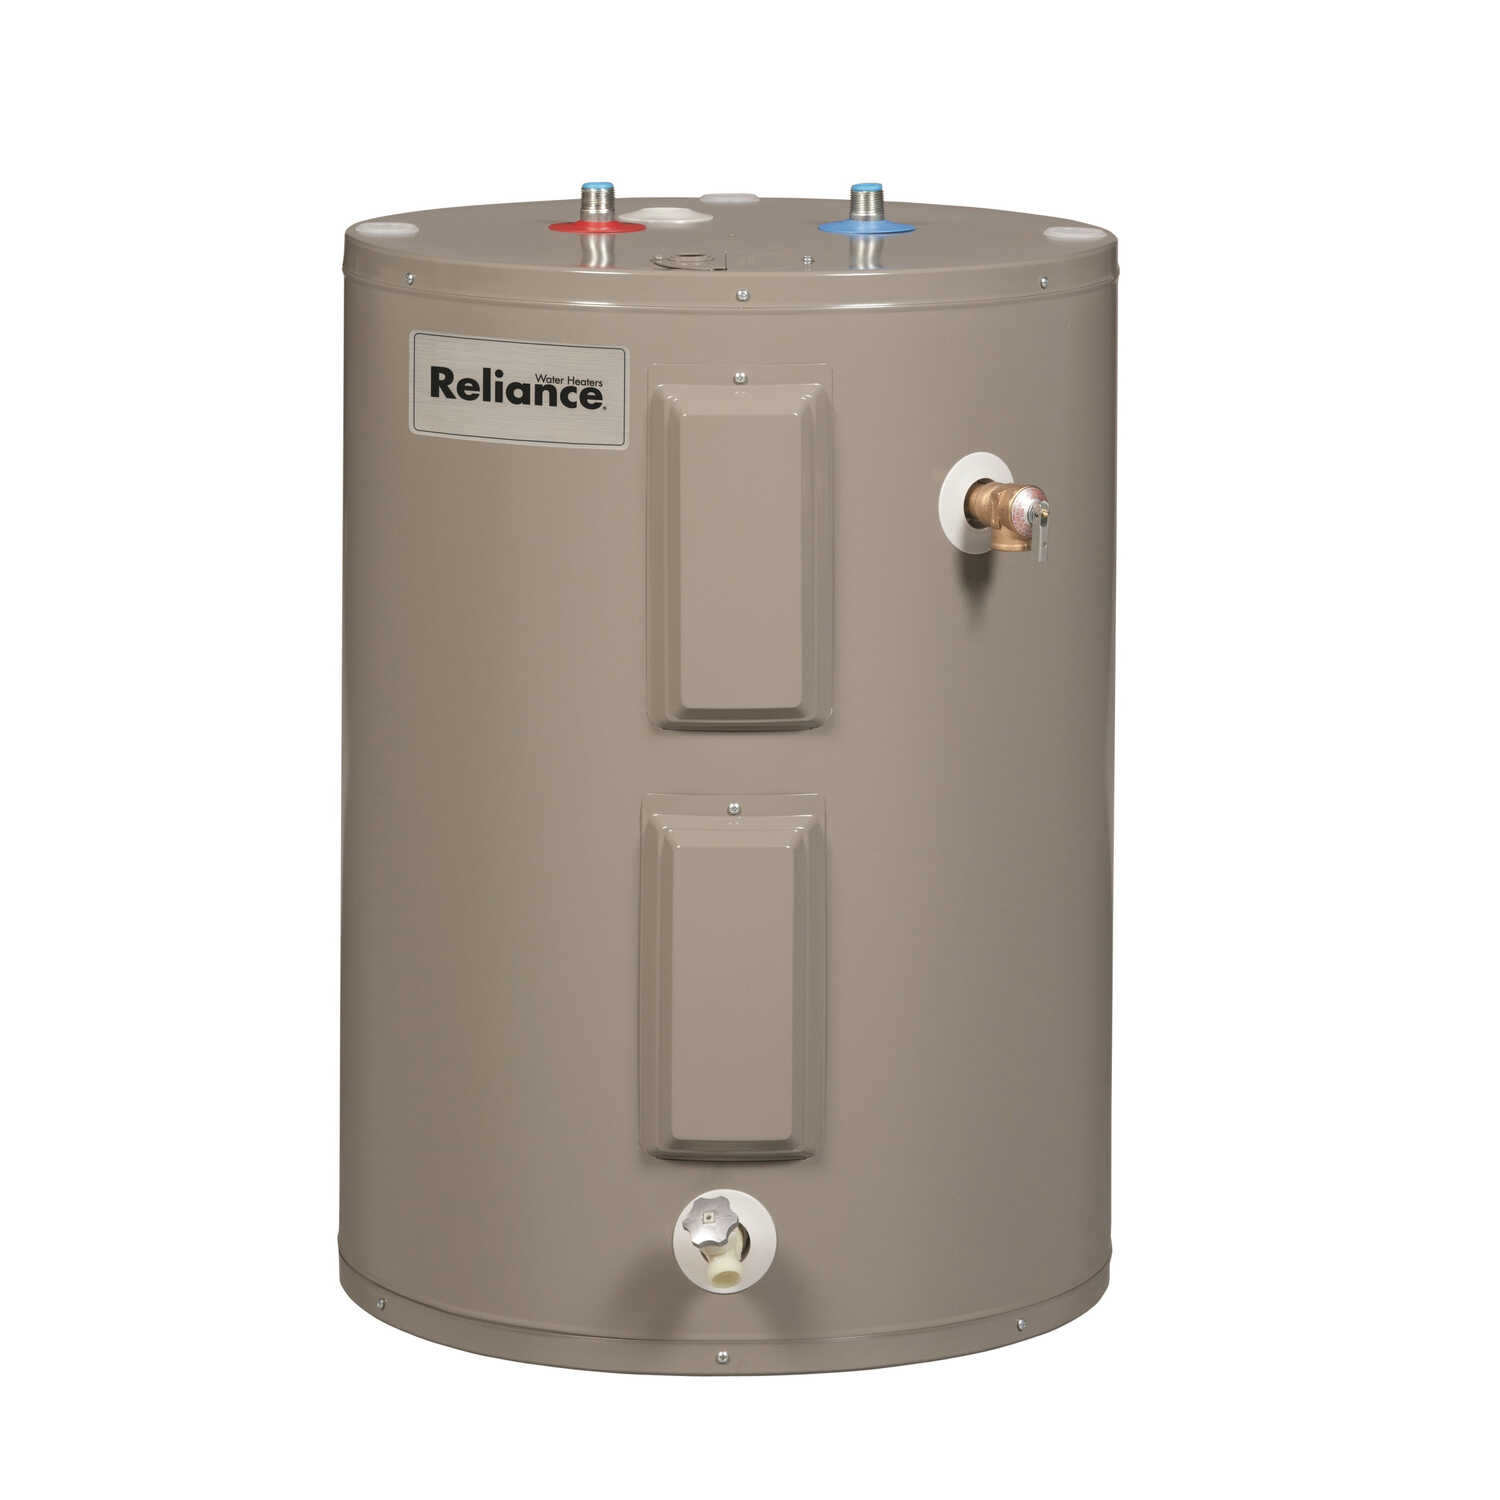 Reliance  Electric  Lowboy Water Heater  32 in. H x 23 in. W x 23 in. L 38 gal.